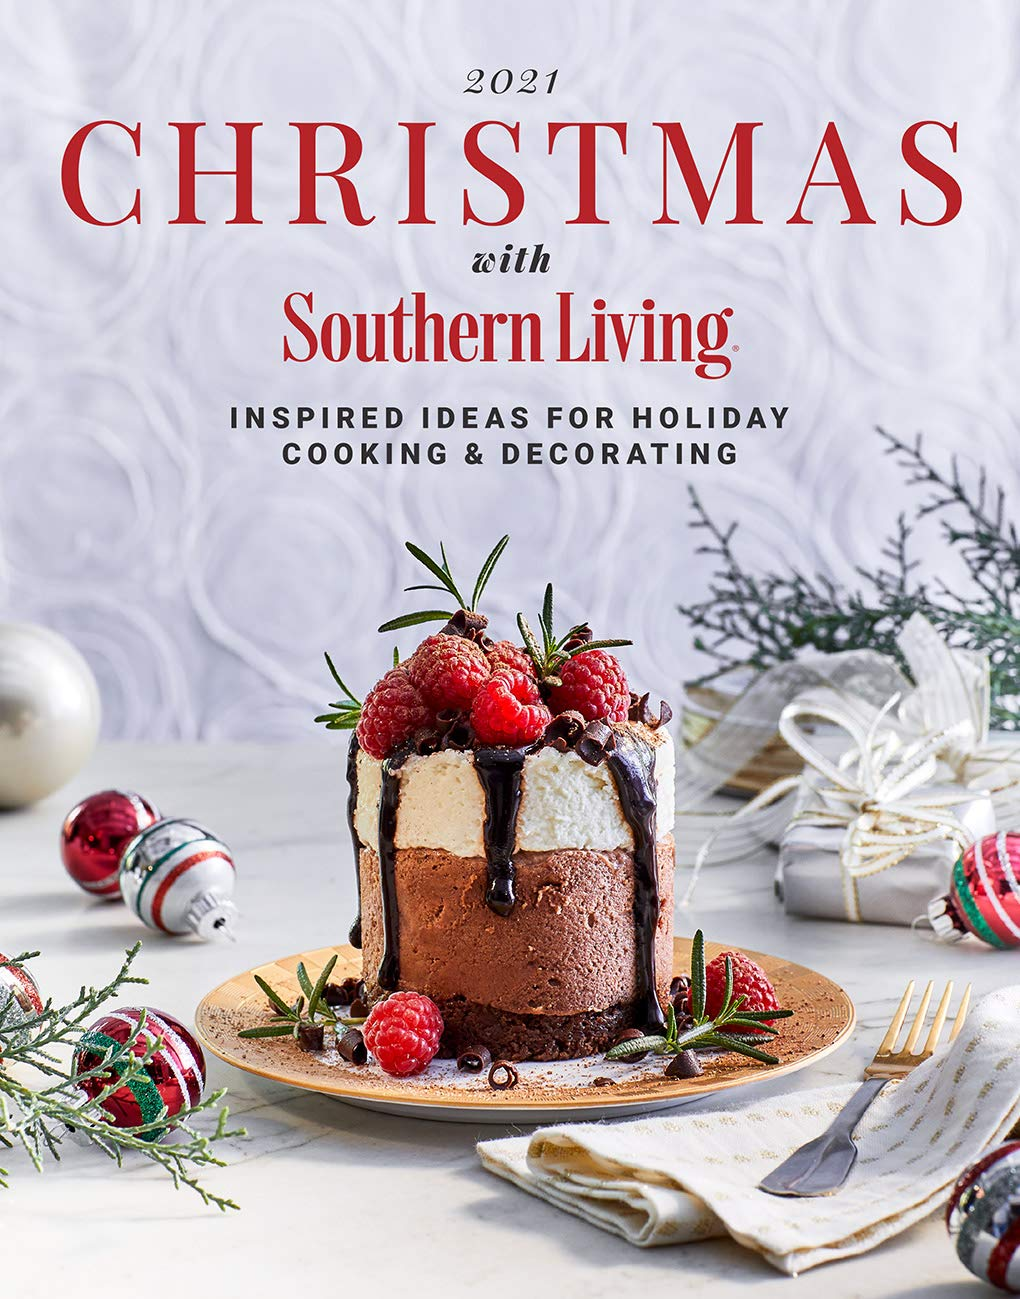 2021 Christmas with Southern Living